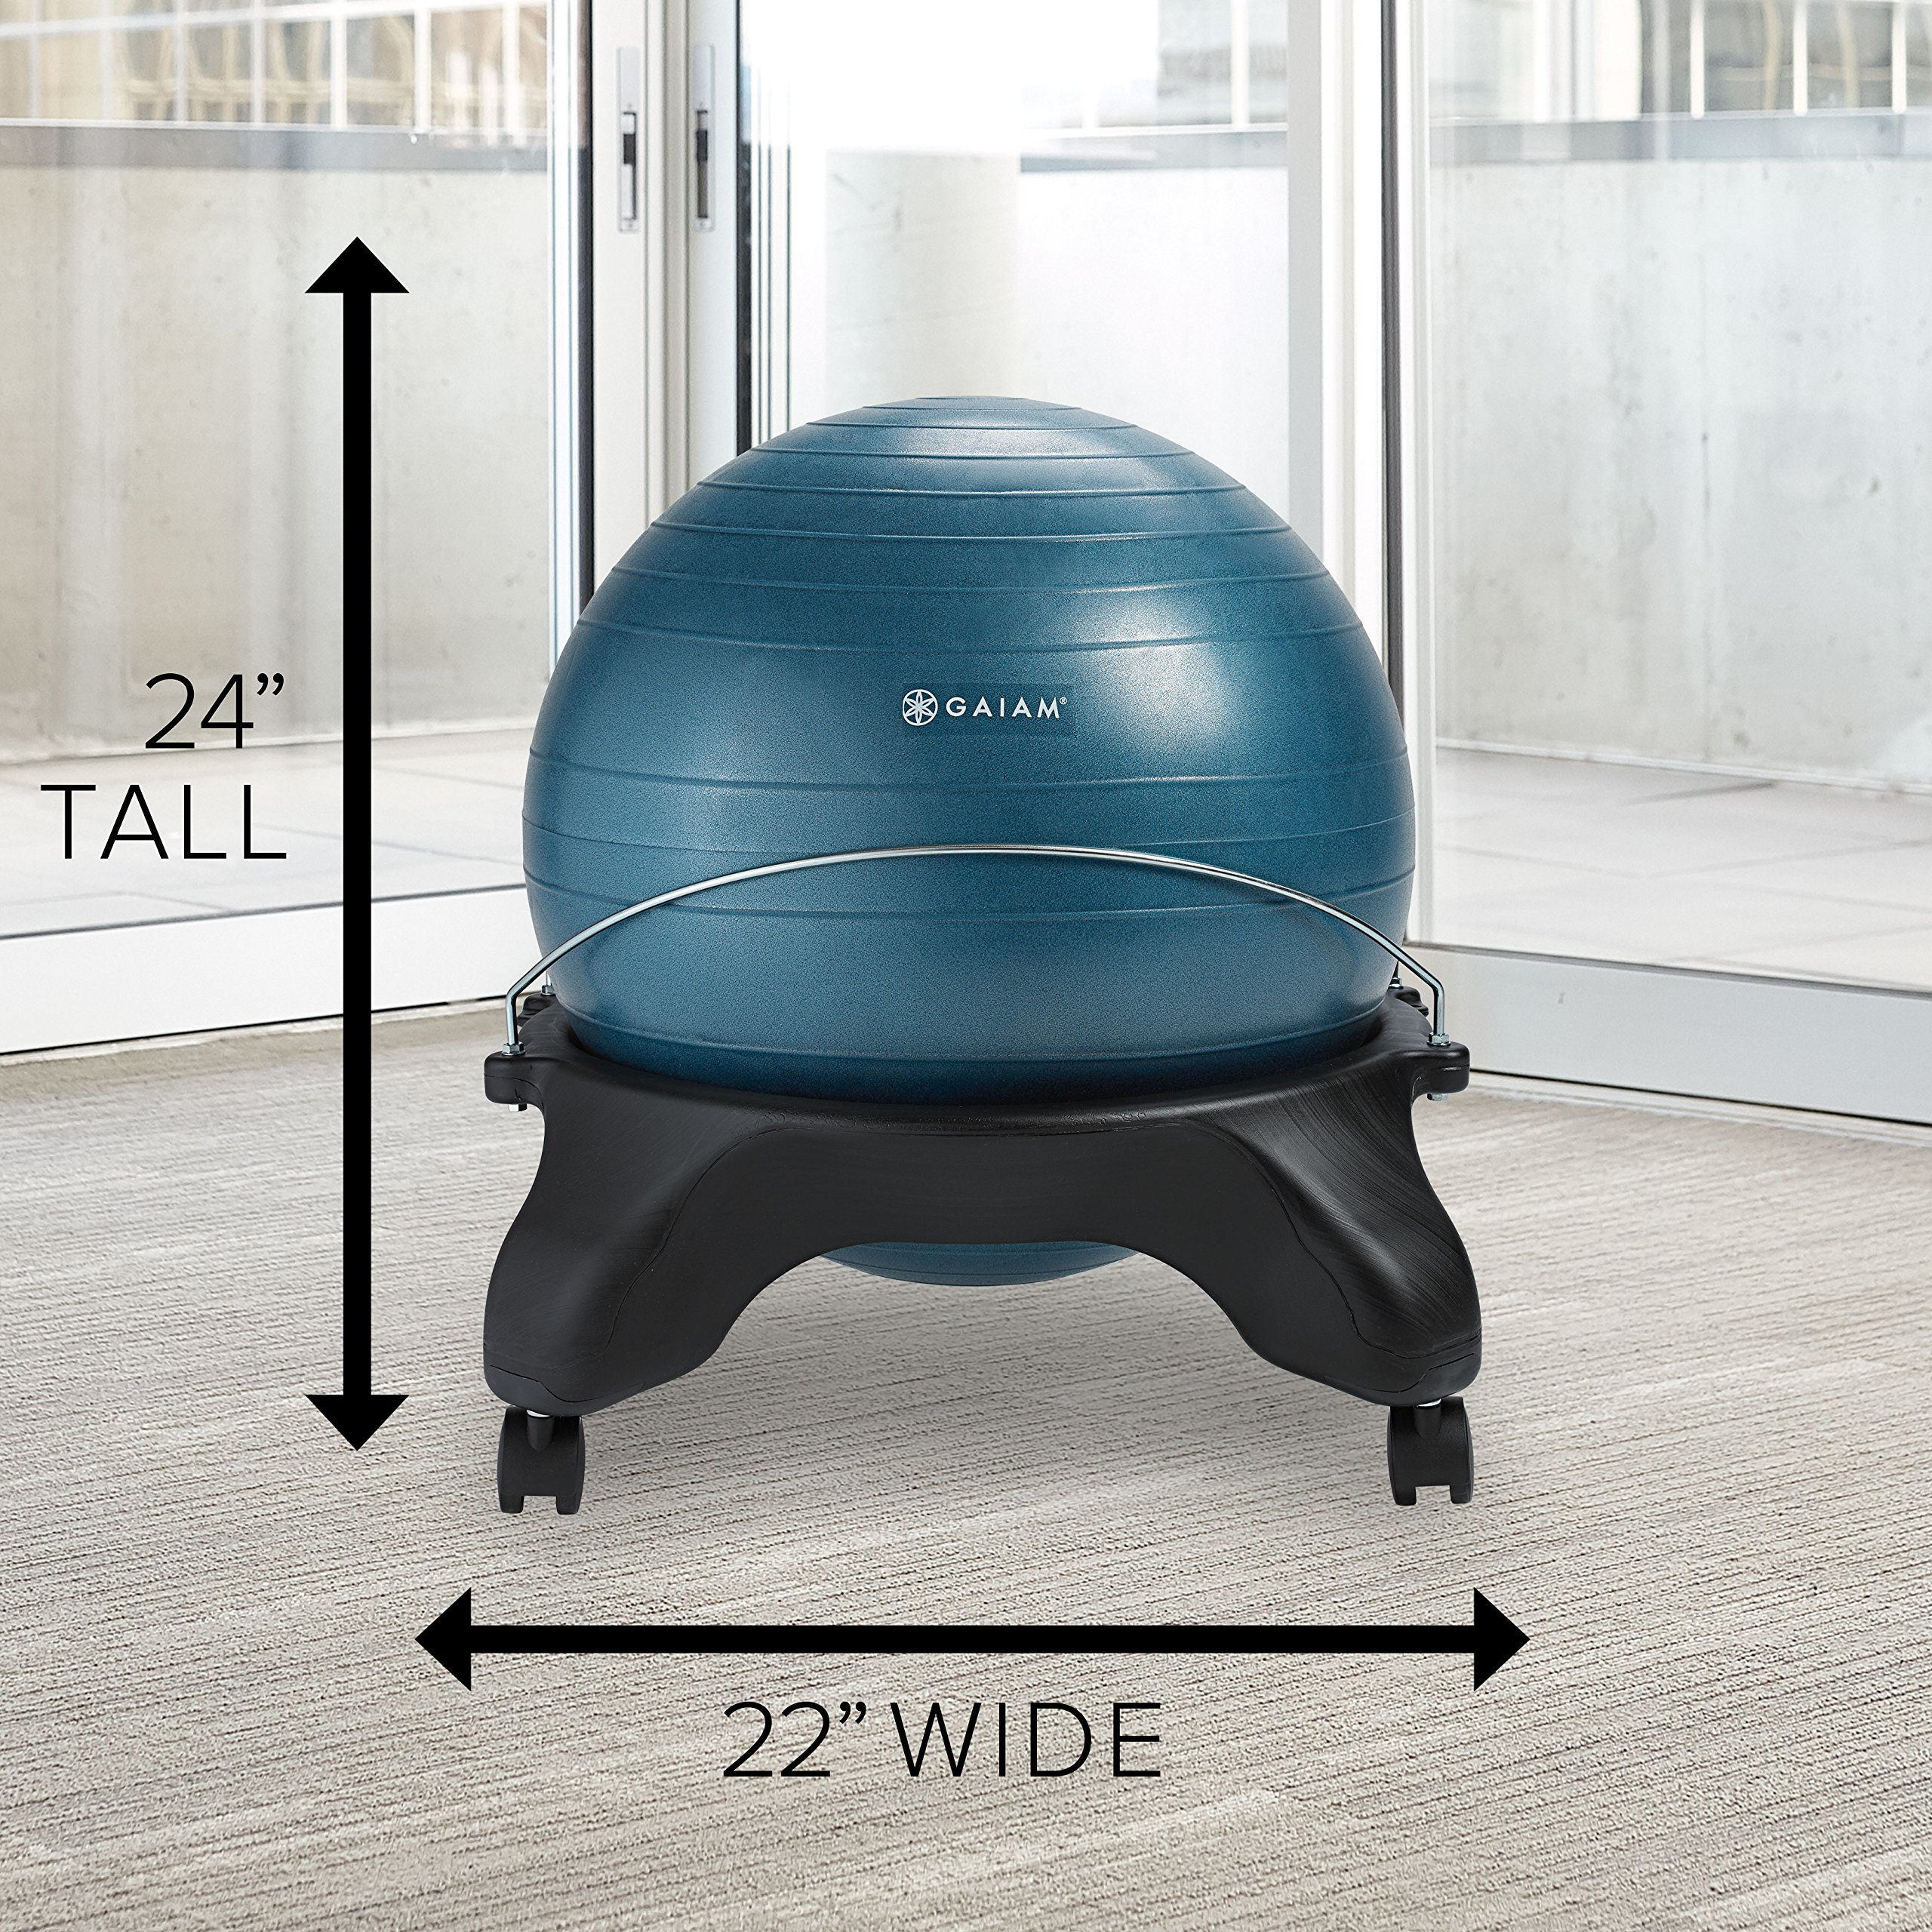 Gaiam Classic Backless Balance Ball Chair Exercise